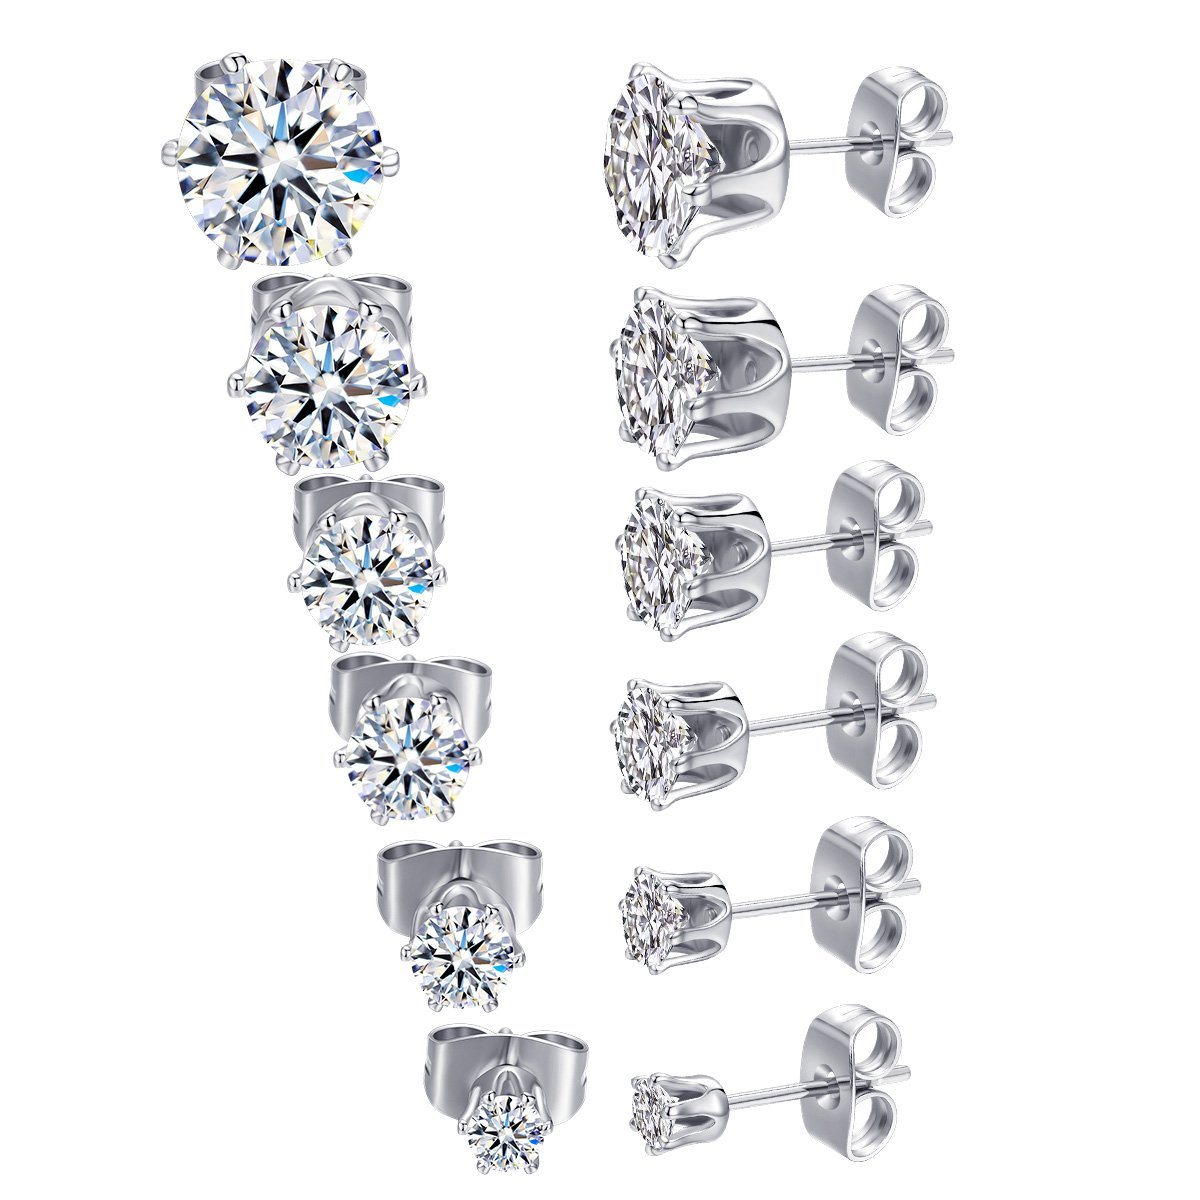 MDFUN 18K White Gold Plated Round Clear Cubic Zirconia Stud Earring Pack of 6 Pairs 6 Pairs